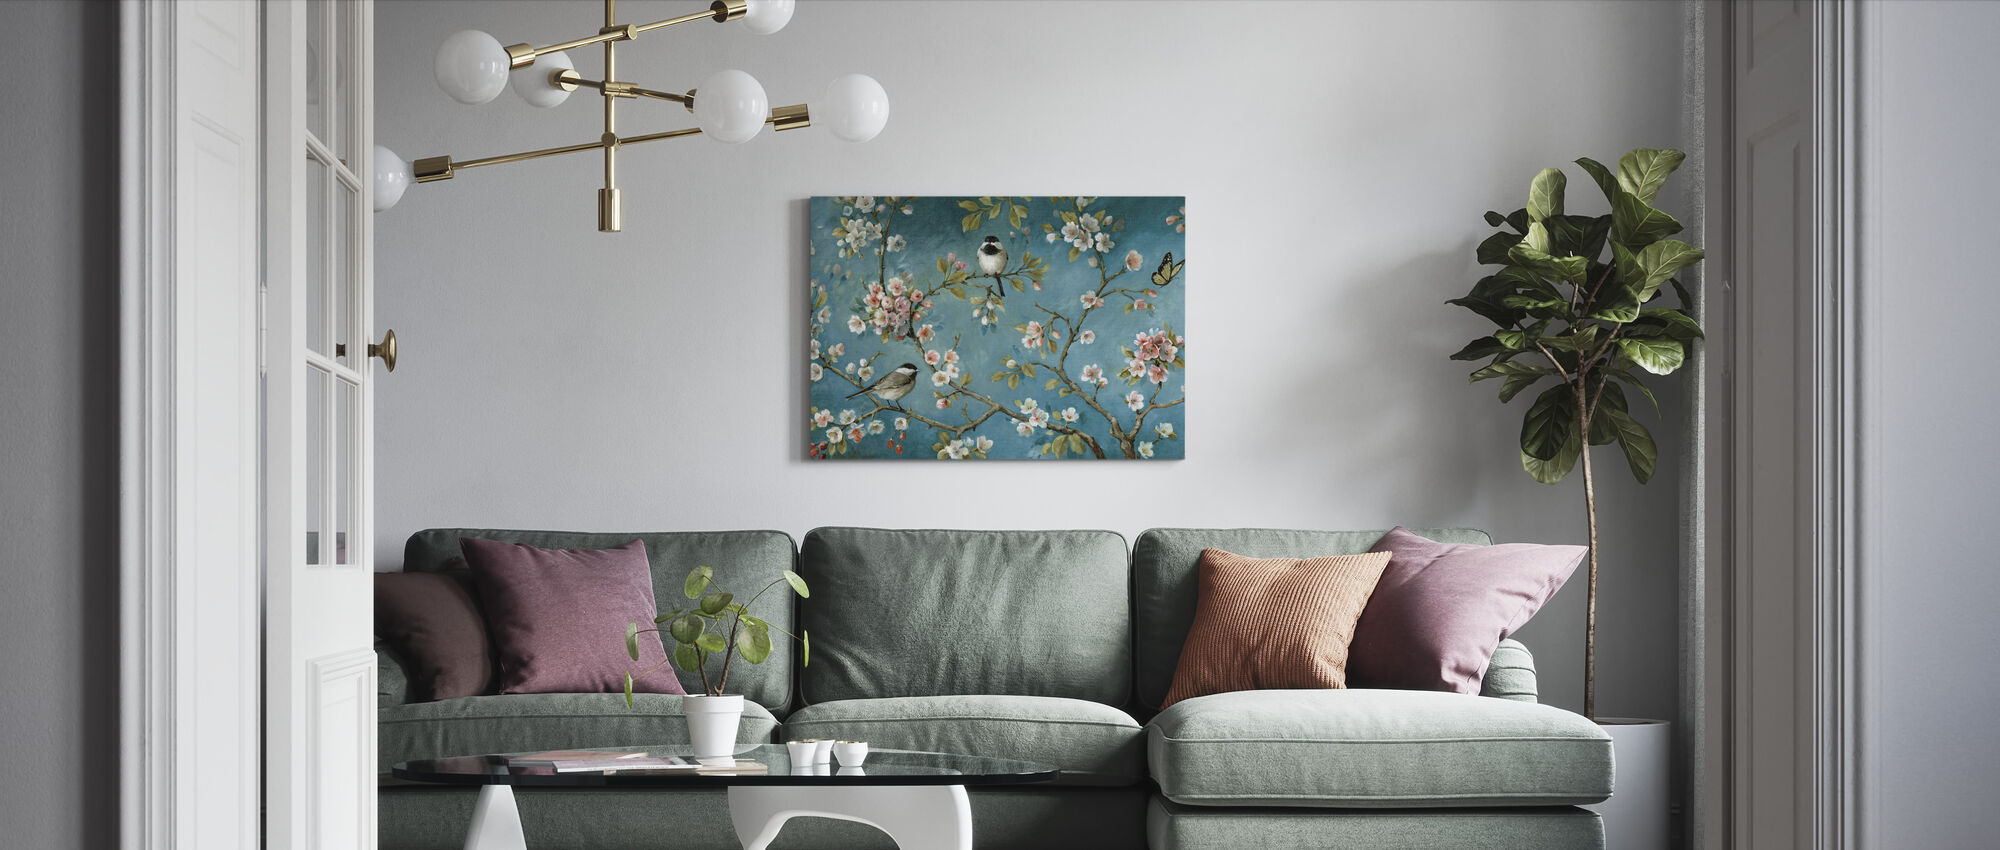 Blossom - Canvas print - Living Room